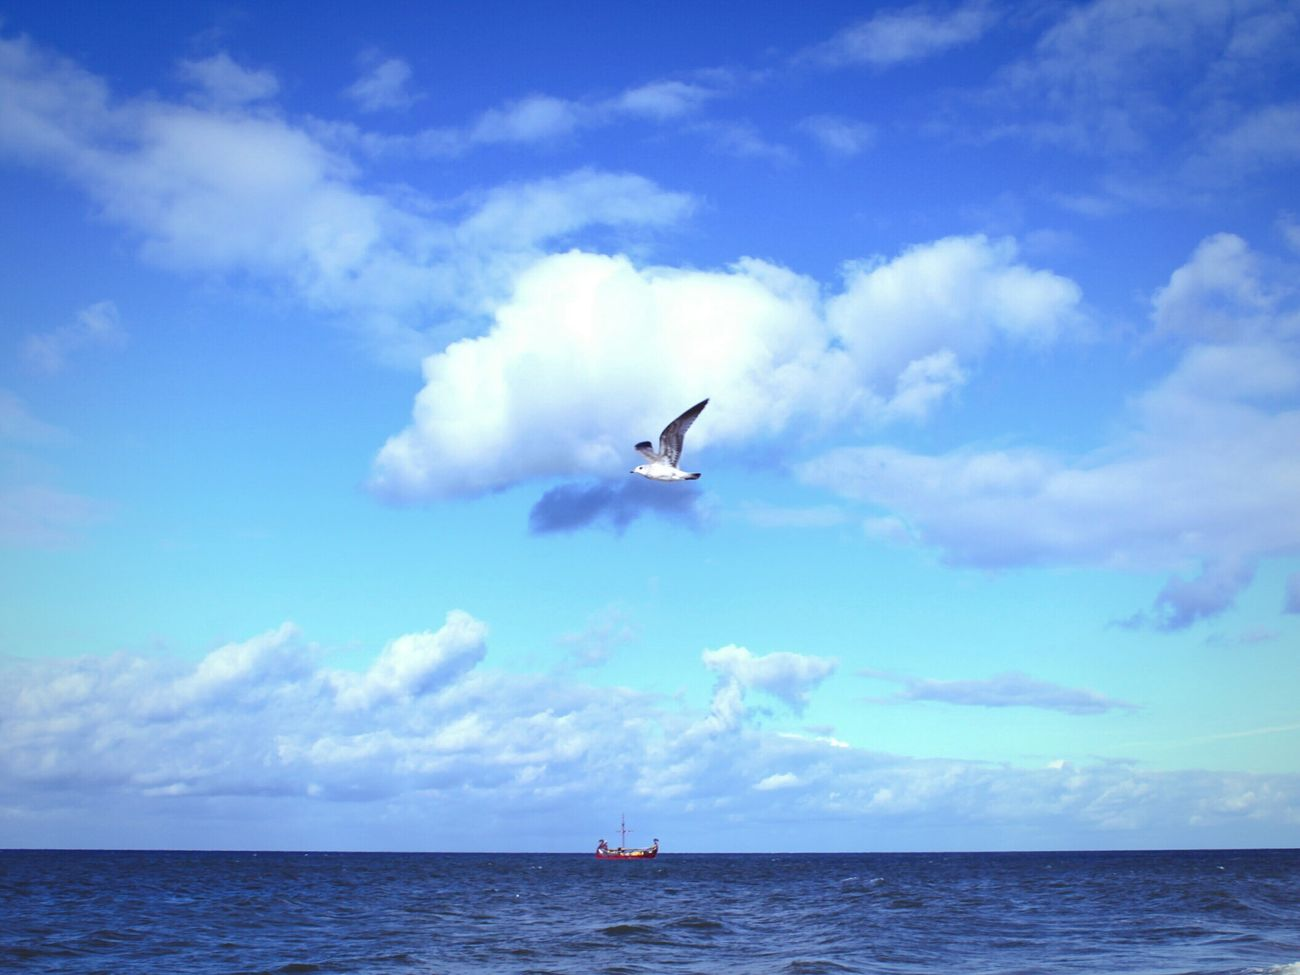 Sea Seaandsky Sky Clouds Seabird Bluesky Ship Shipatsea Capture The Moment Freedom Dream Dreaming Dreamer Surreal Nature Unrealistic Color Palette